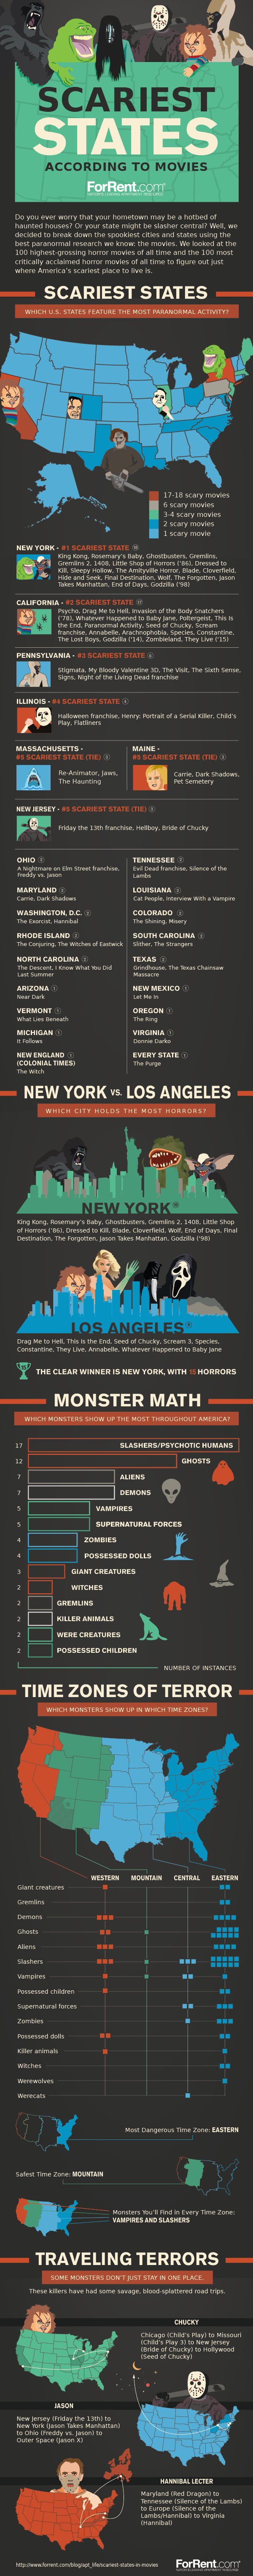 Scariest States According to Movies #Infographic